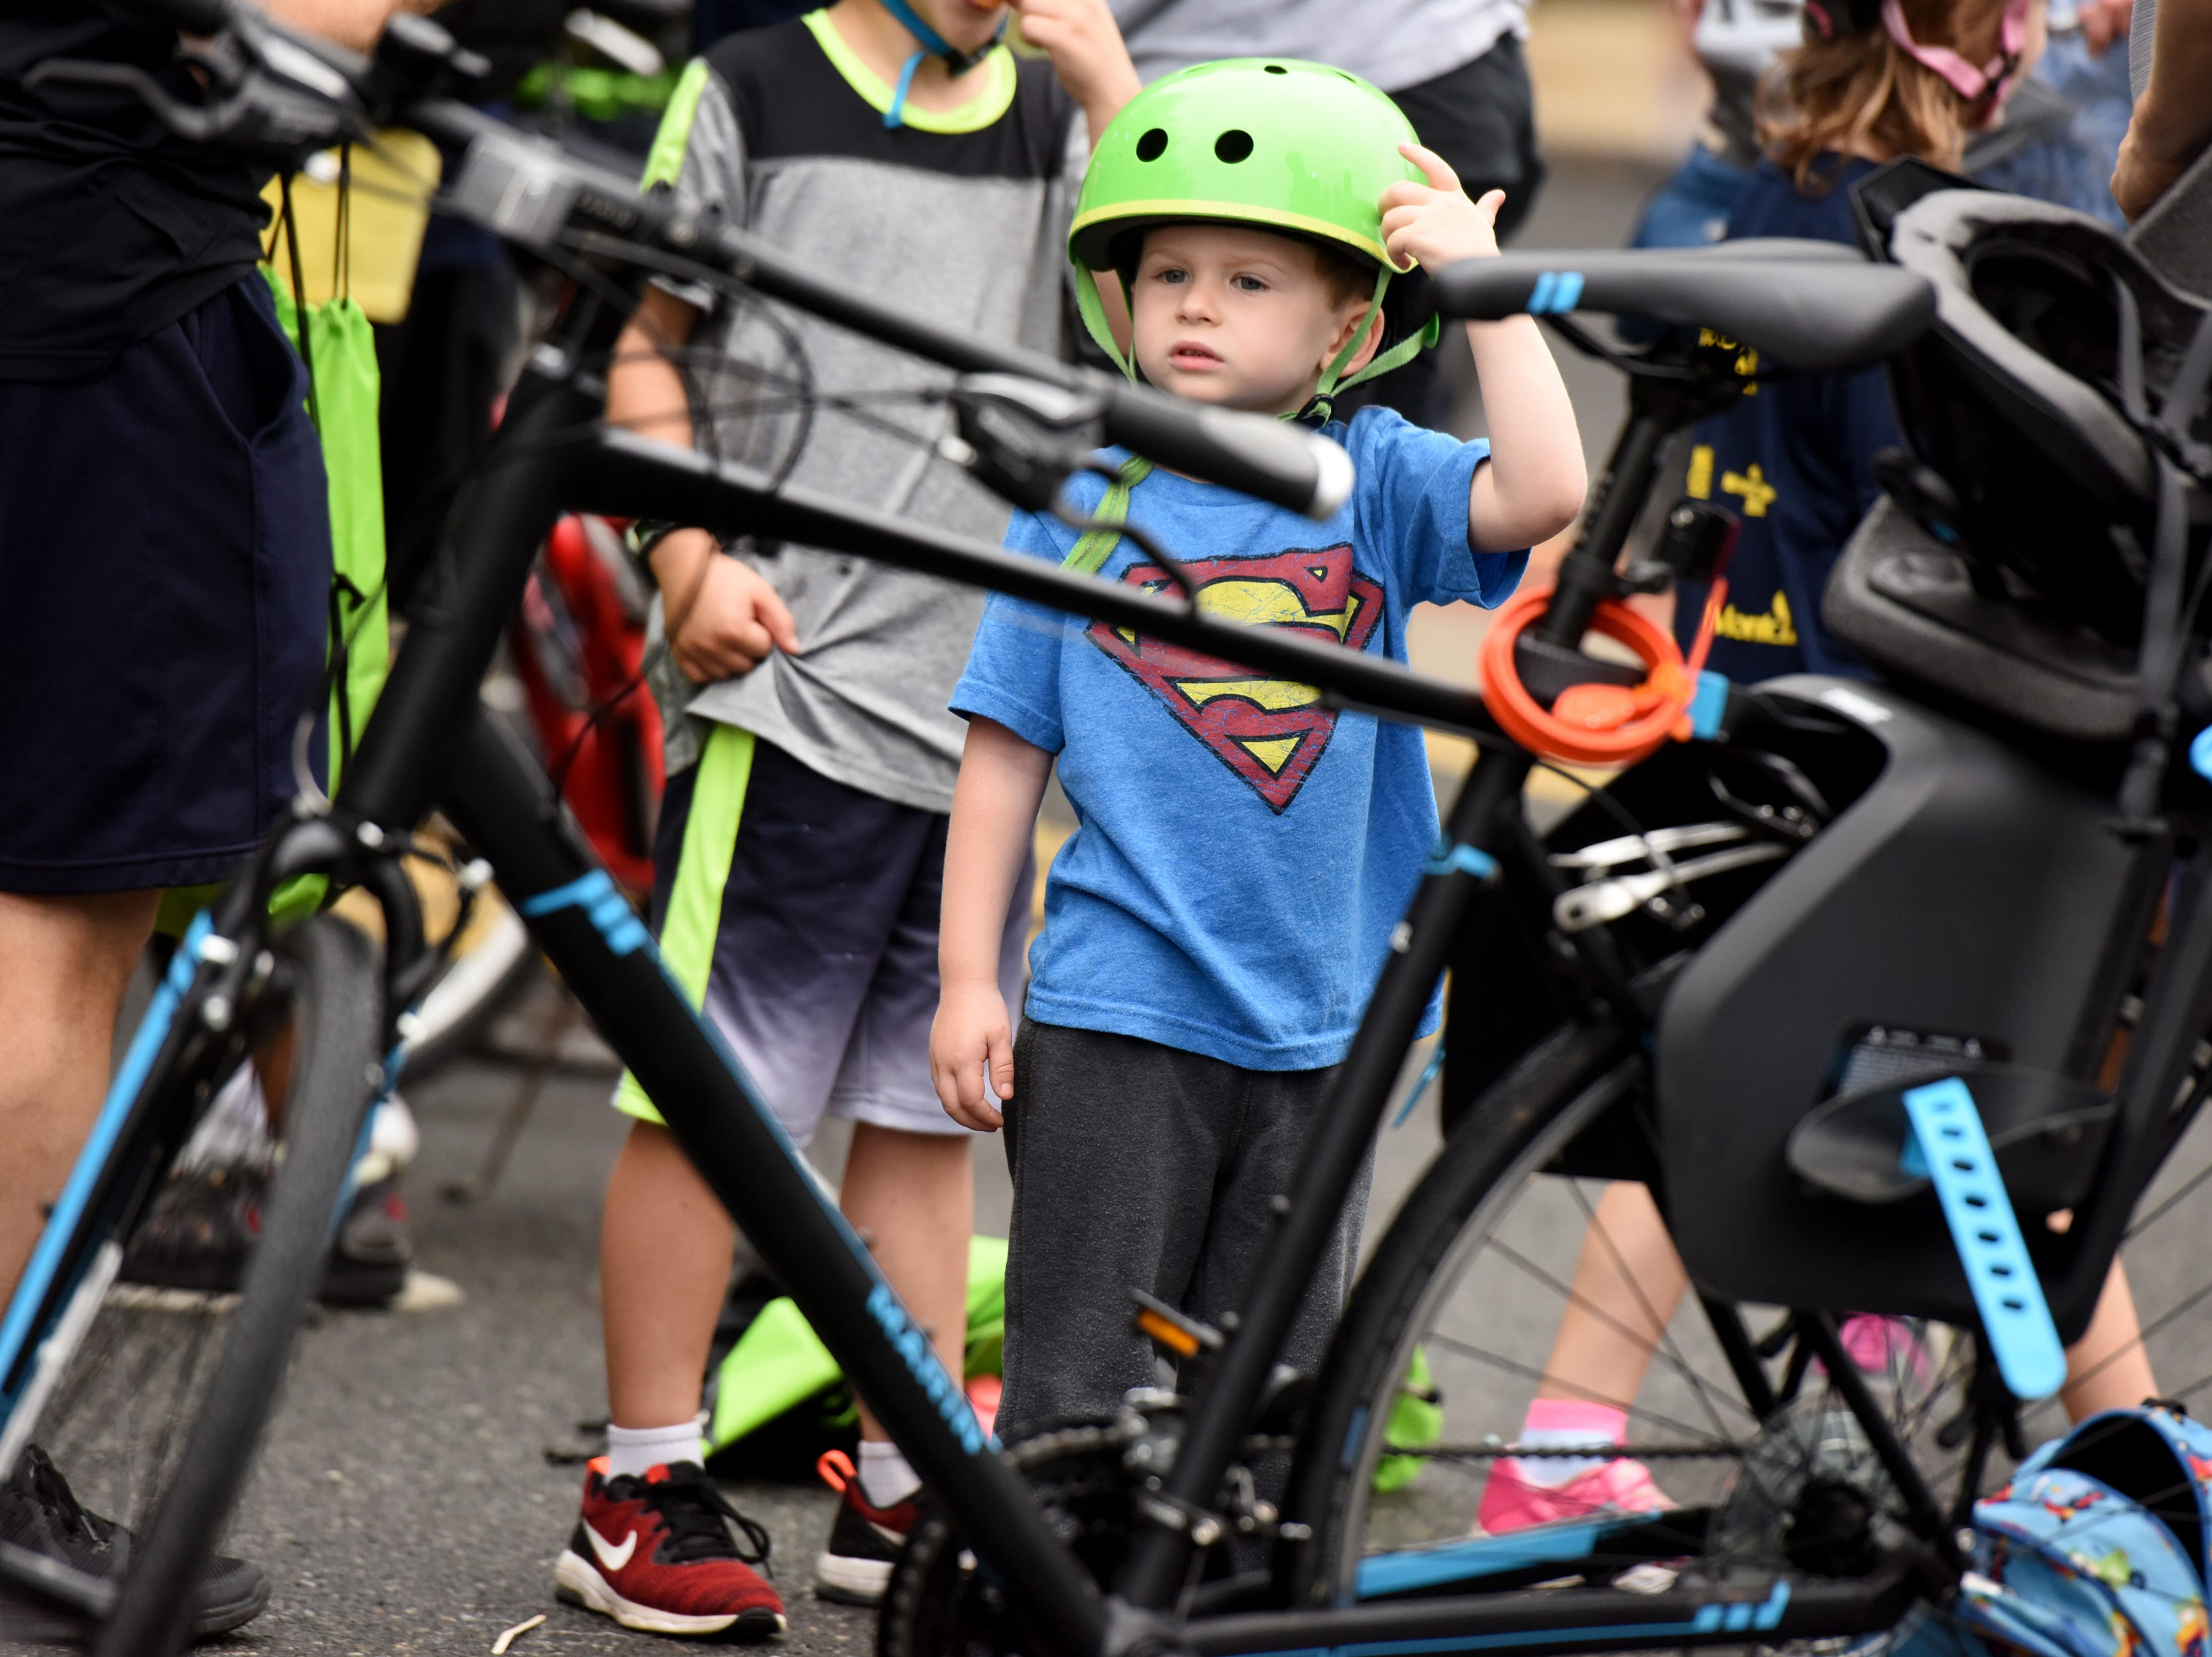 The Tour de Montclair a family-friendly bike ride with 6- and 12- mile options was held on Sunday, October 7, 2018. Samuel Lippman 4, of Glen Ridge, adjusts his helmet while waiting for the ride to leave from Crane Park.